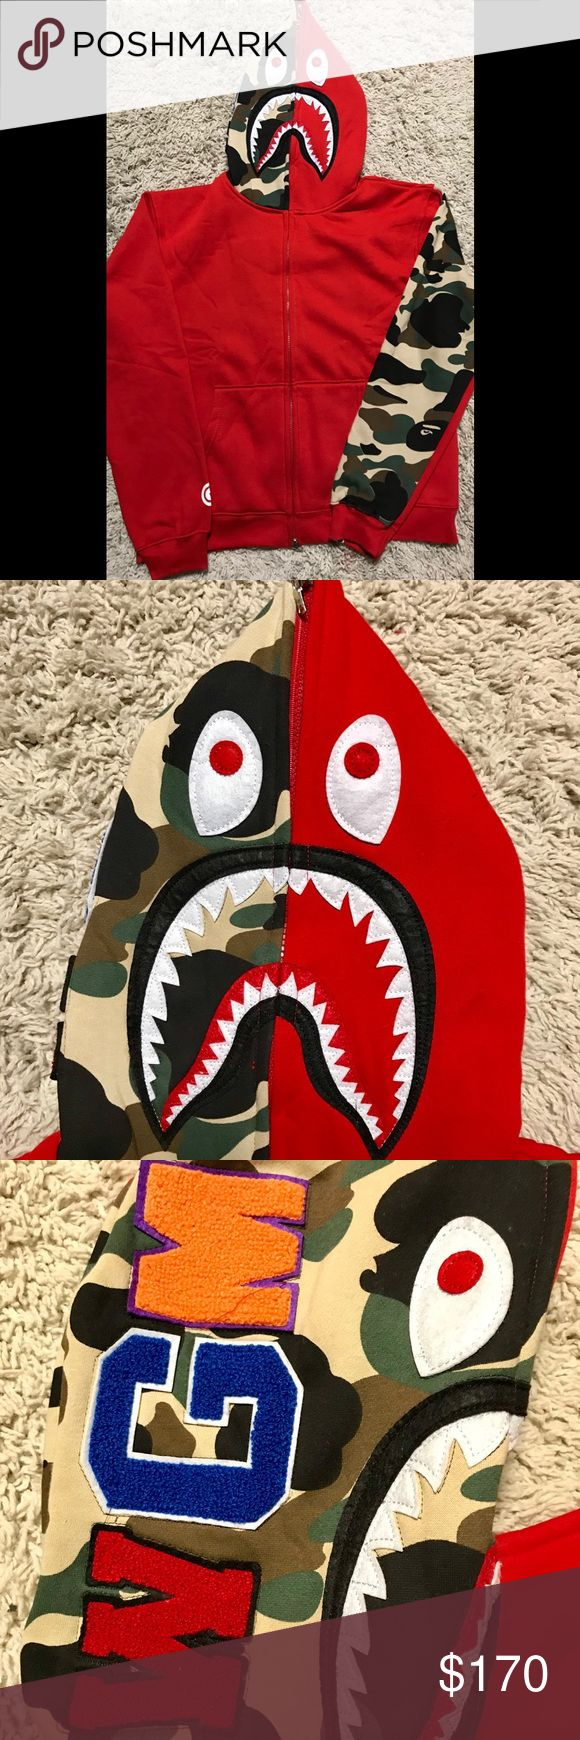 Bape Red Camo Jacket This is for all t Bape Sweaters Zip Up